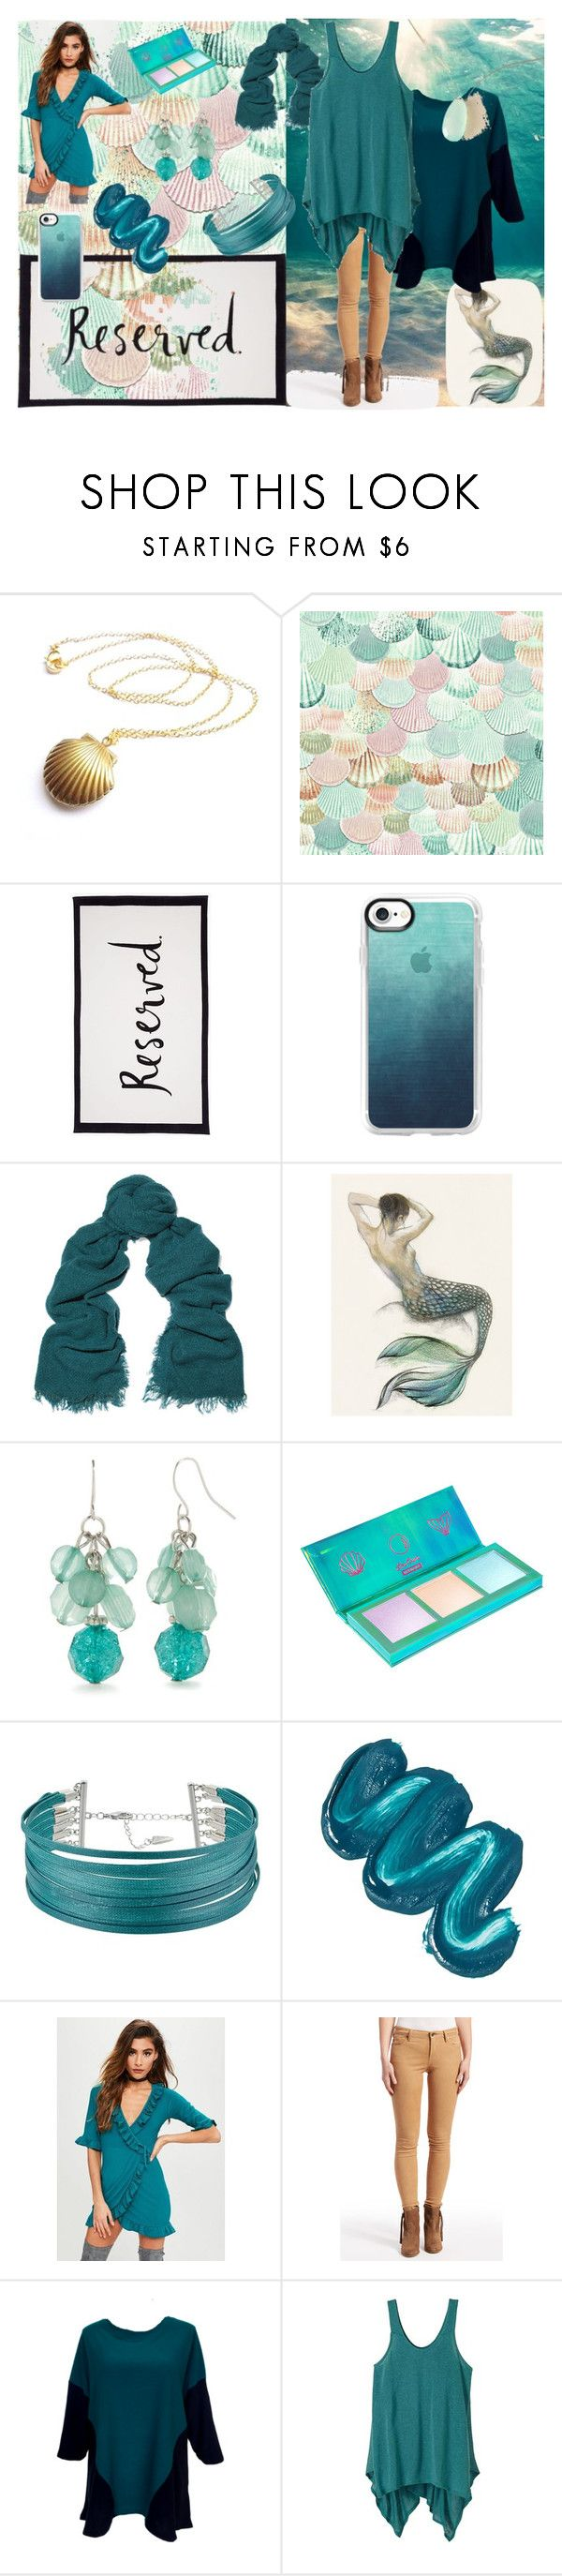 """""""GiGi's Dramatic Color"""" by laura-winters-1 on Polyvore featuring Kate Spade, Casetify, Rick Owens, Kim Rogers, Lime Crime, GUESS, Mermaid Salon, Missguided, AG Adriano Goldschmied and prAna"""